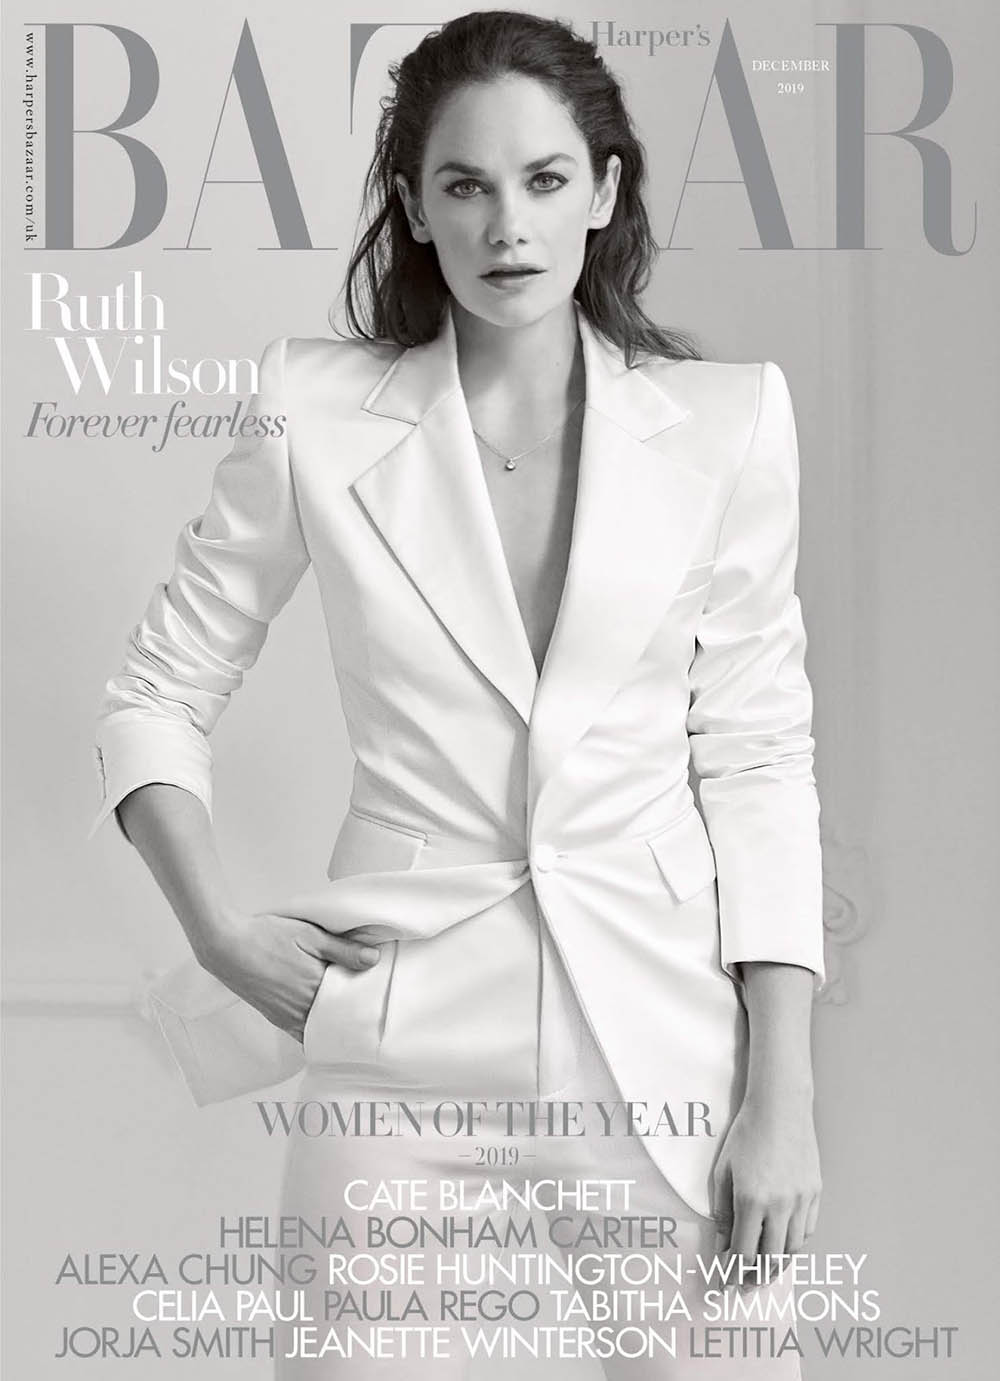 Ruth Wilson covers Harper's Bazaar UK December 2019 by Richard Phibbs